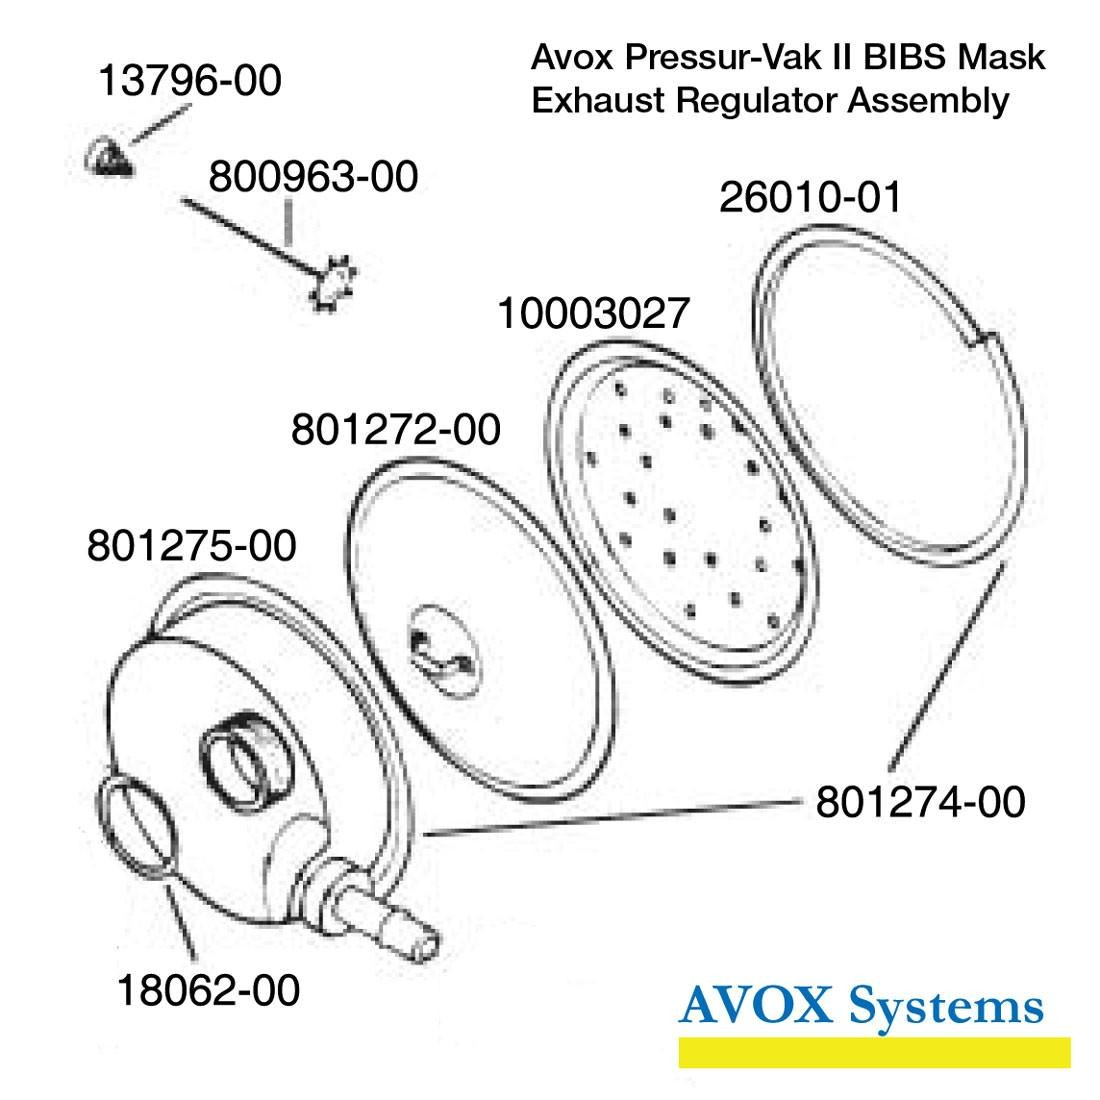 Pressur-Vak II Exhaust Regulator Assembly - Spares